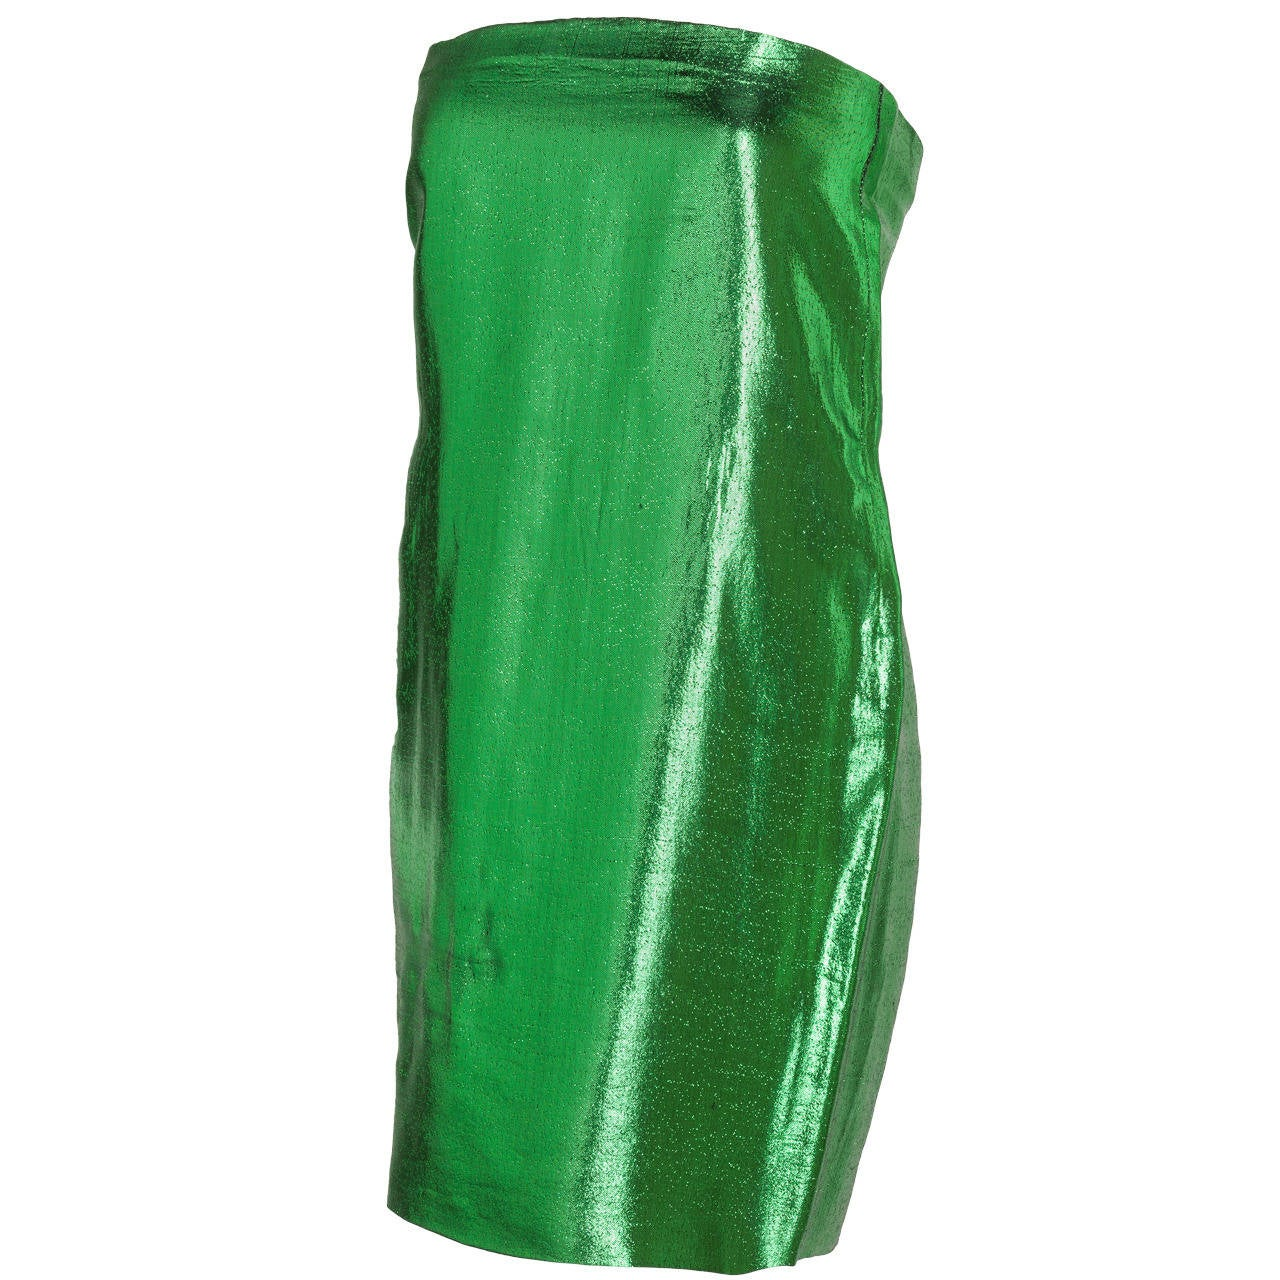 1970s Pierre Cardin Haute Couture Green Lame Tube Dress w/Keyhole Slit at Back 1